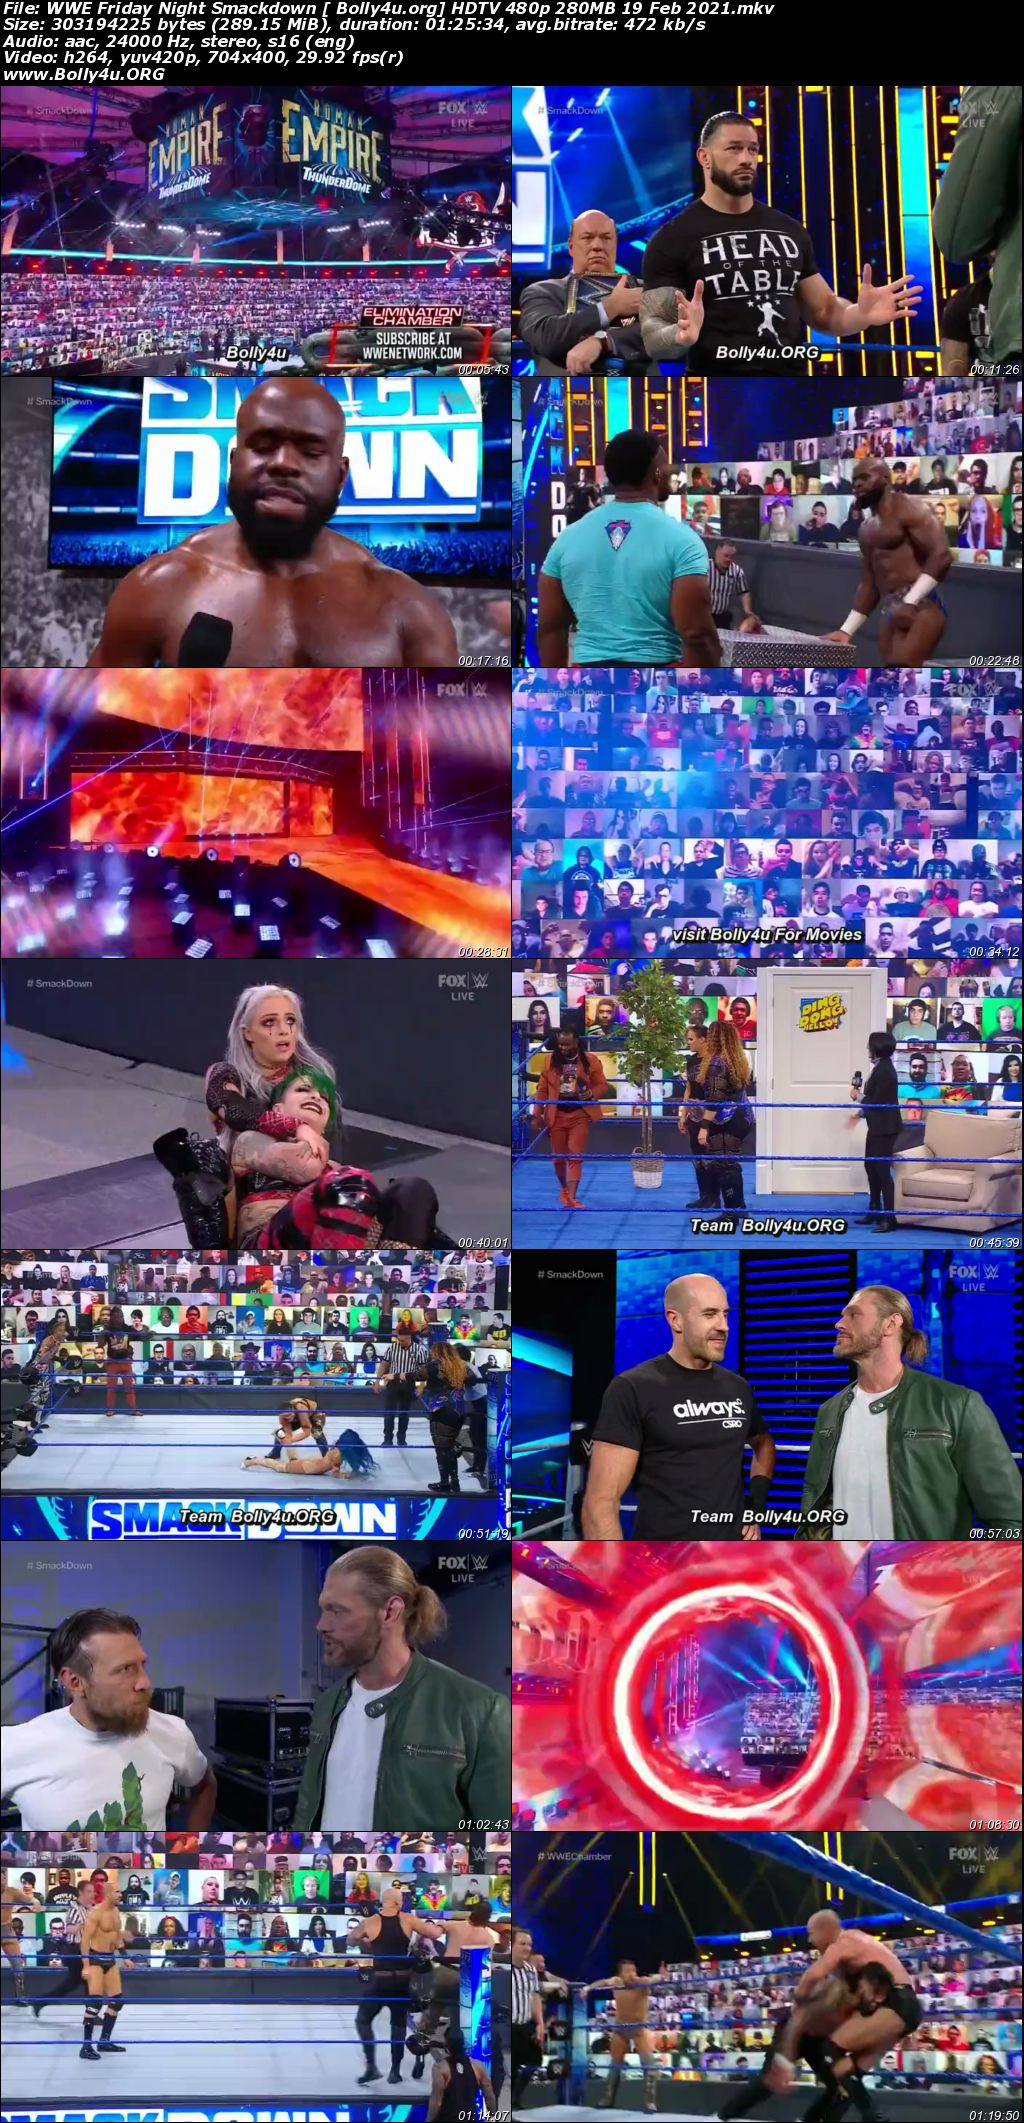 WWE Friday Night Smackdown HDTV 480p 280MB 19 Feb 2021 Download